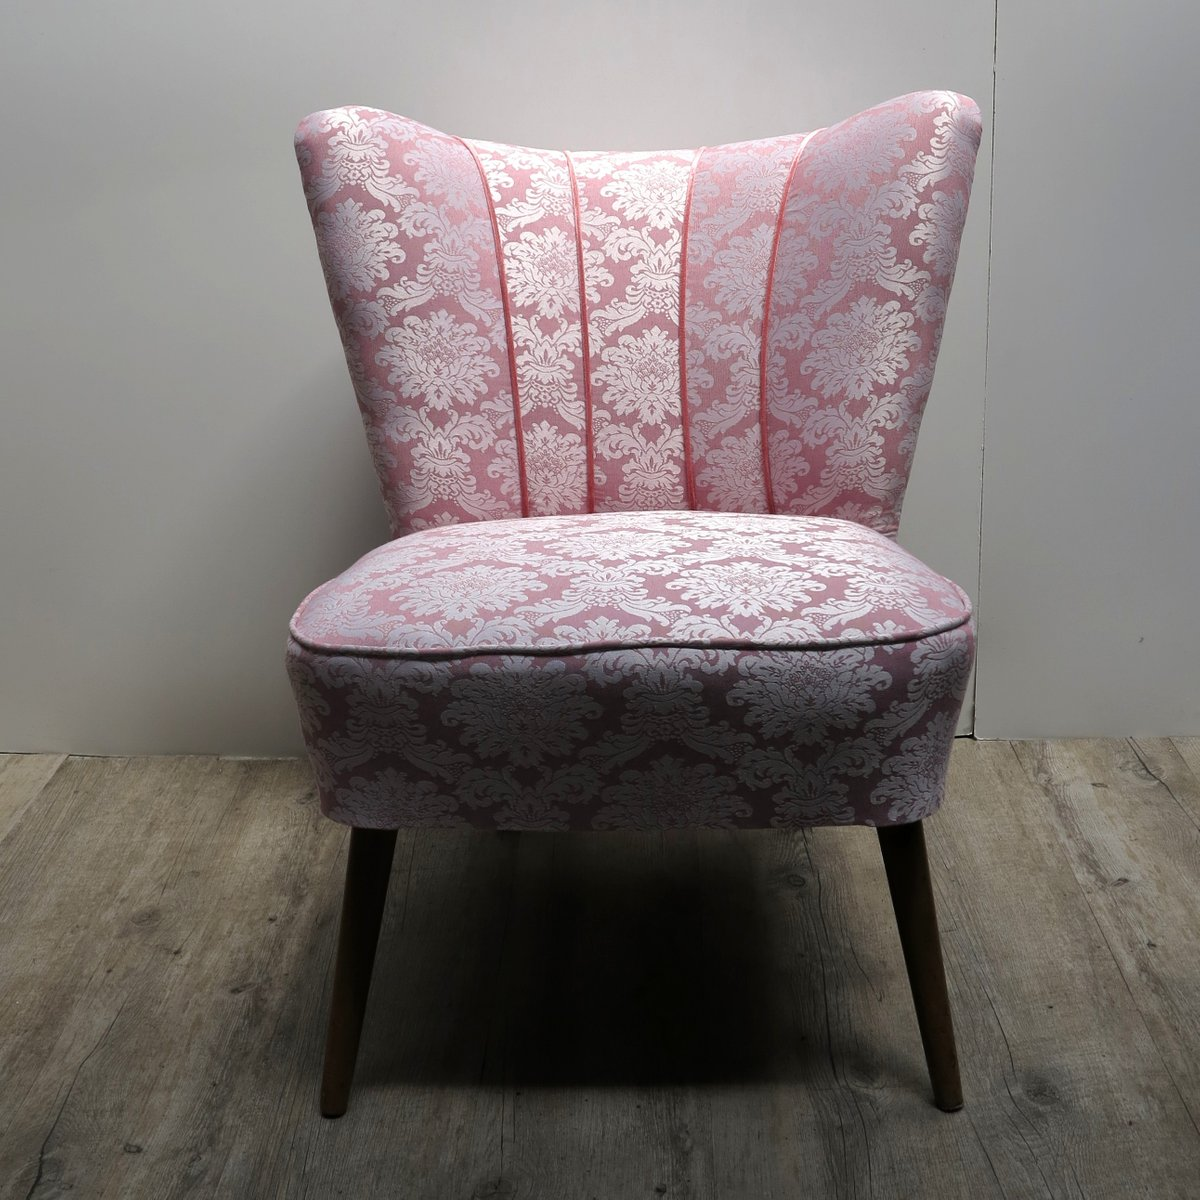 Cocktailsessel Vintage Vintage Pink Cocktail Chair With Wooden Legs For Sale At